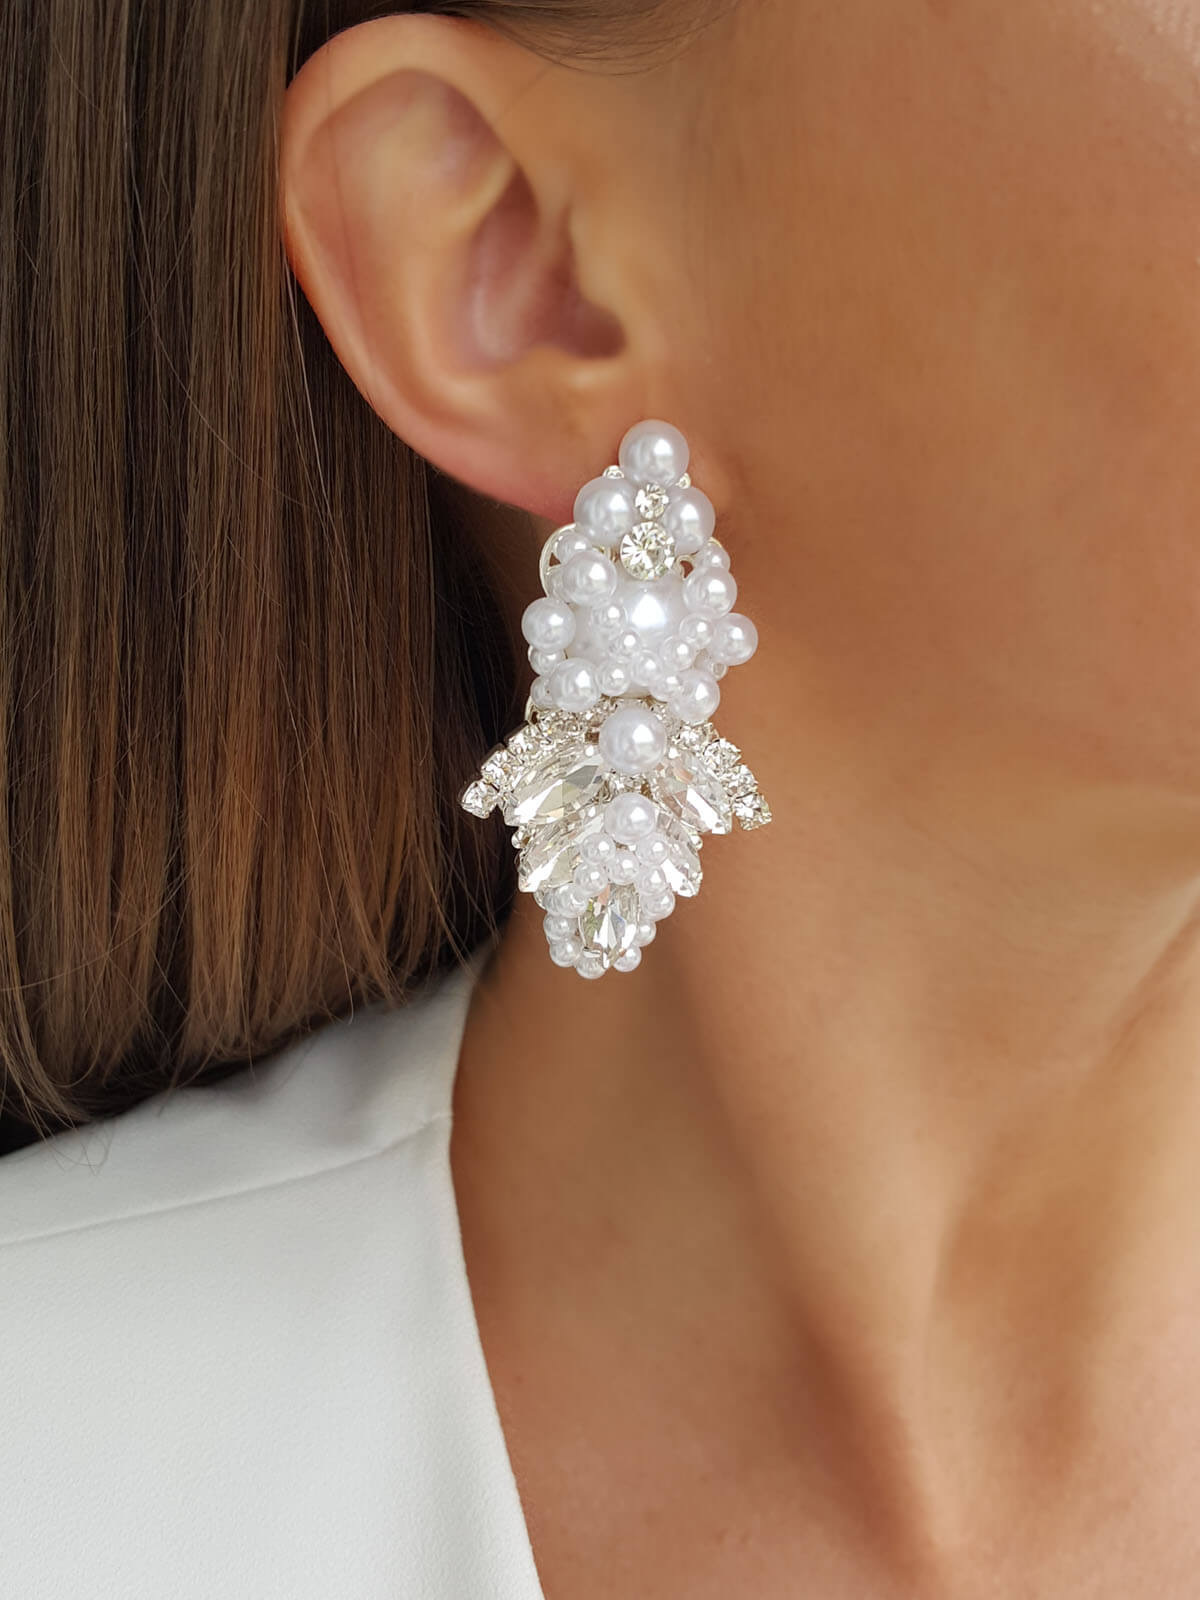 Earrings Wedding 81a